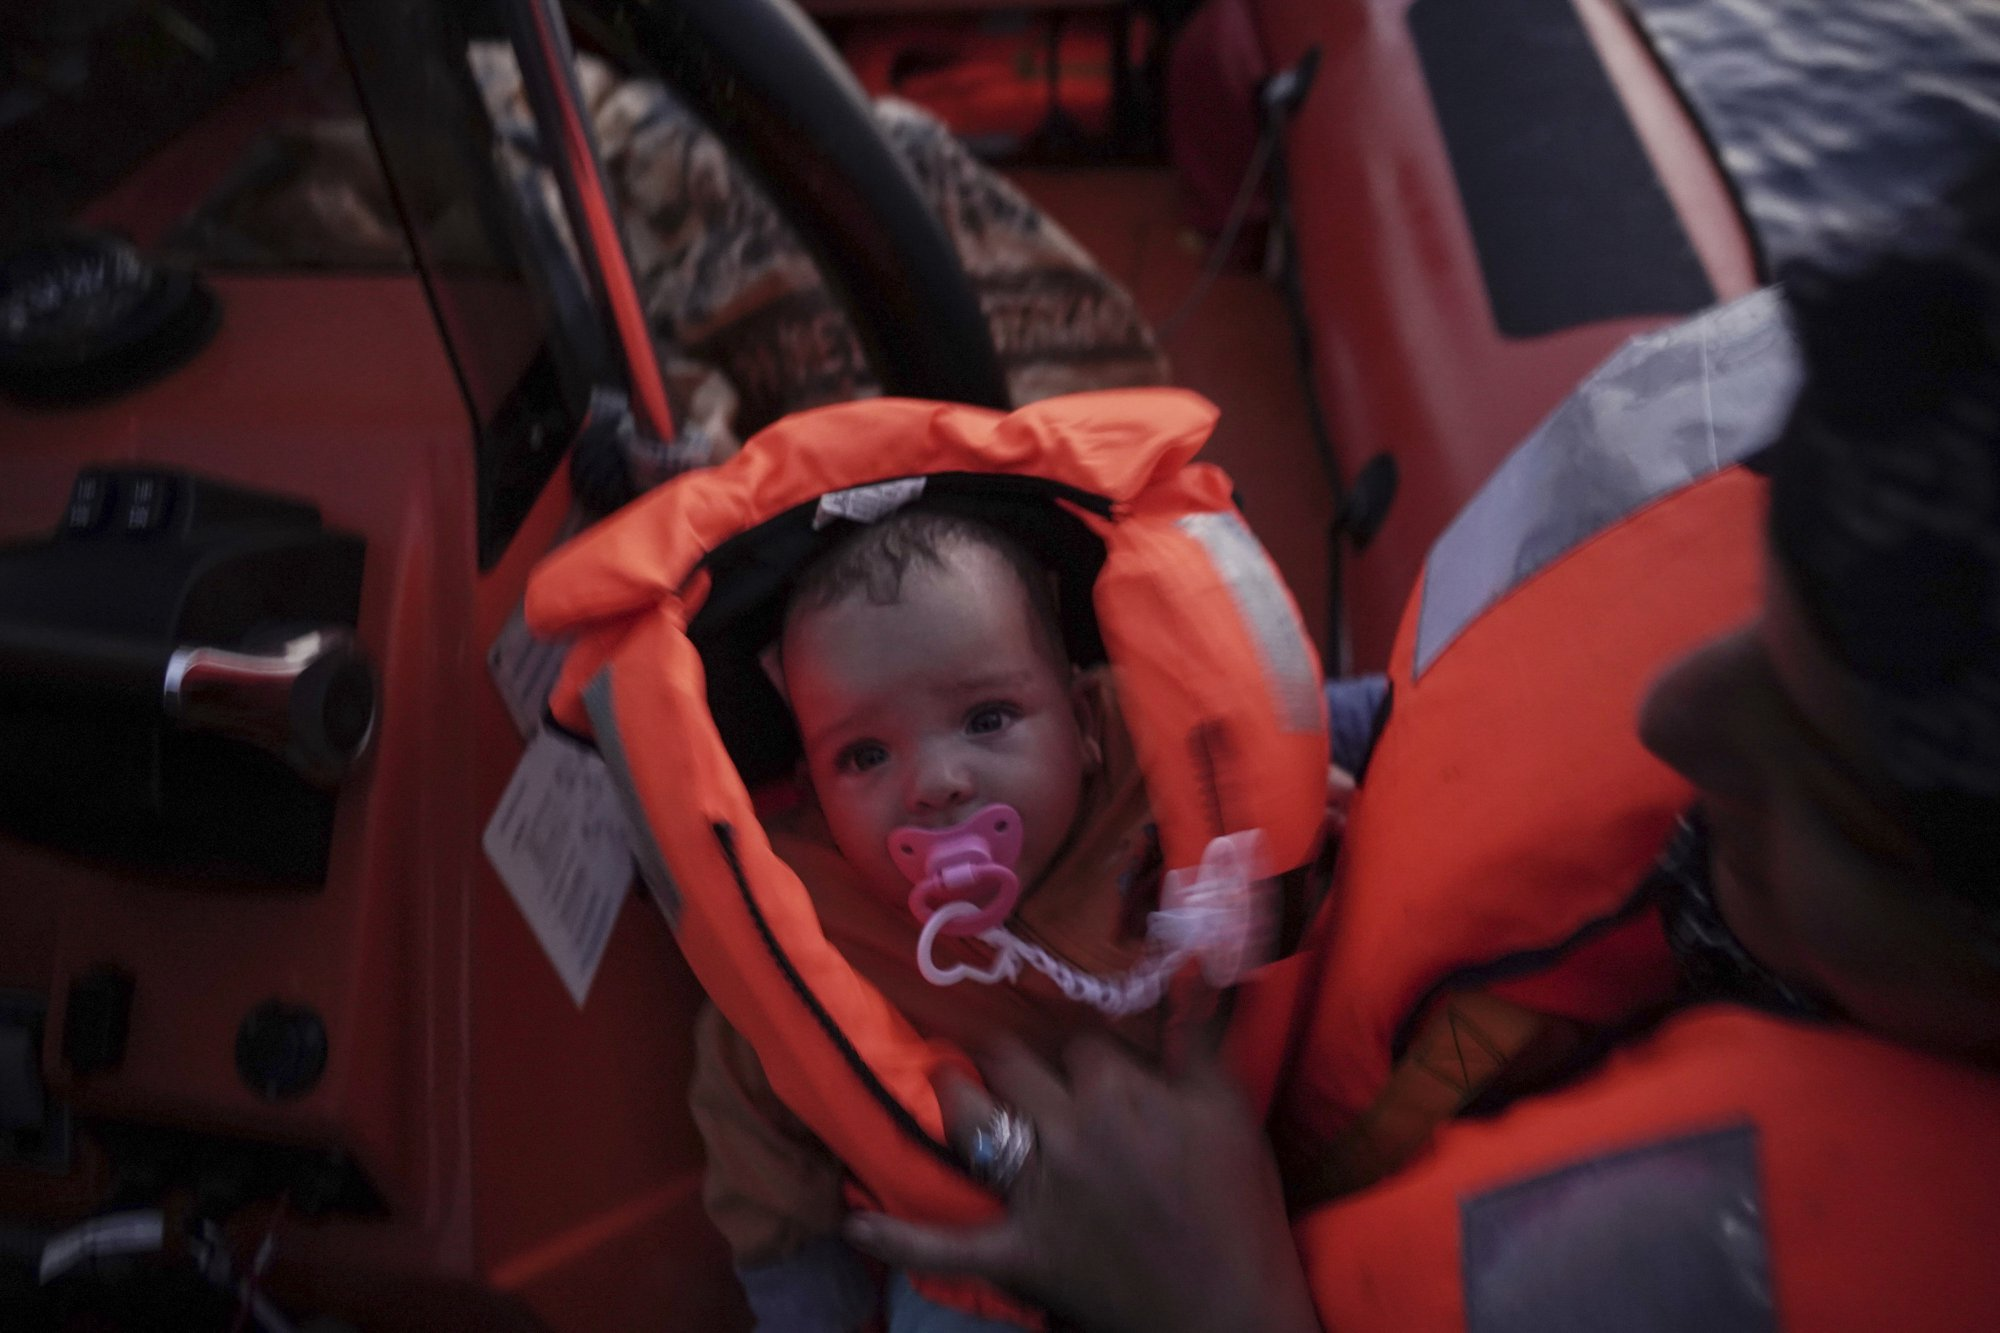 In this Sept. 19, 2019 photo, 4-month-old Mira is held by her mother during a rescue by the Ocean Viking humanitarian ship in the Mediterranean Sea. Her mother says their family escaped Libya after their home was destroyed in the war. (AP Photo/Renata Brito)